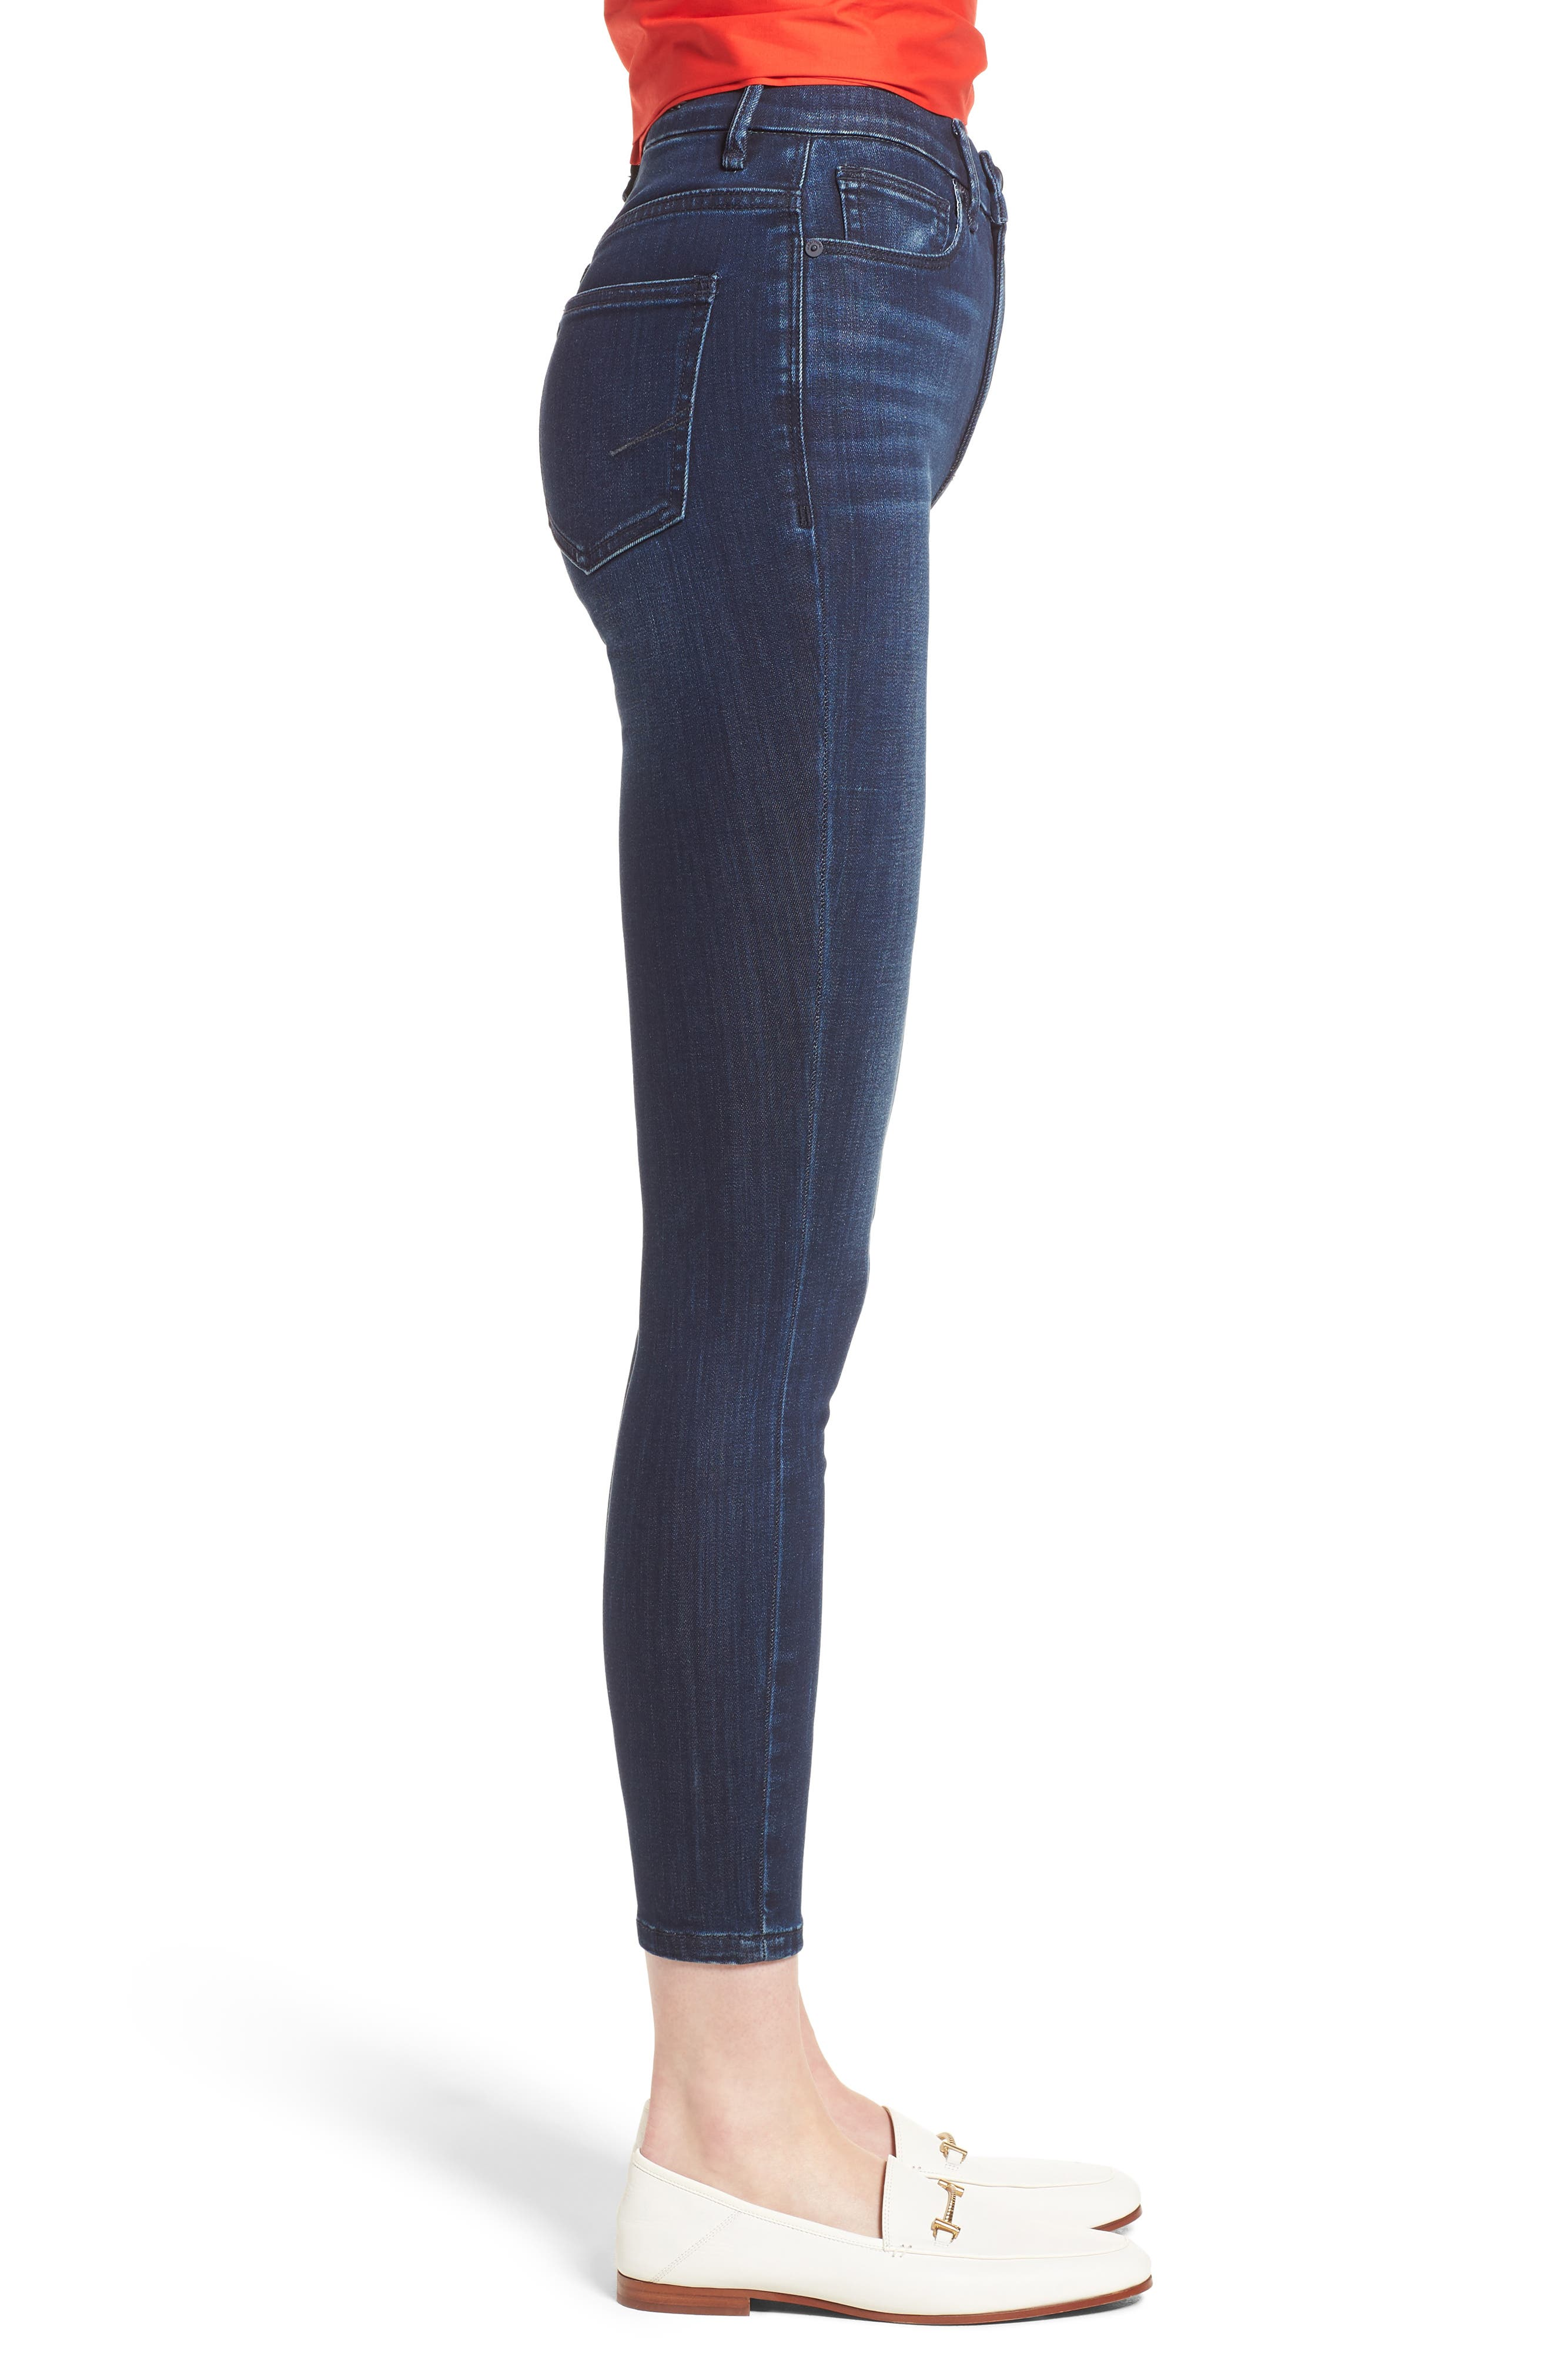 Cressa High Rise Ankle Skinny Jeans,                             Alternate thumbnail 3, color,                             SUGAR MAPLE